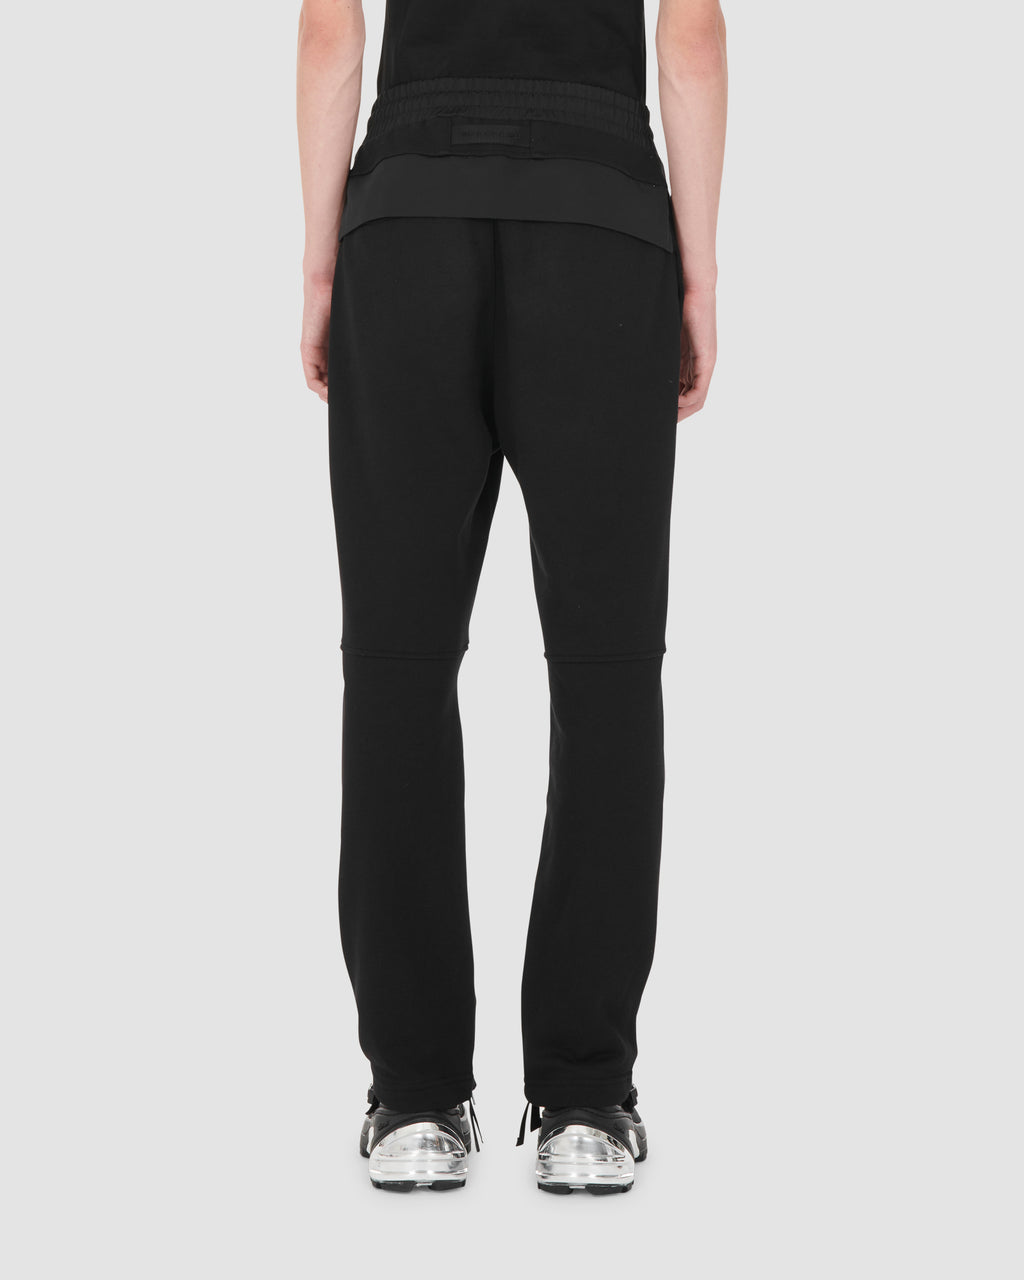 1017 ALYX 9SM | TREK ZIP SWEATPANT | Pants | BLACK, Google Shopping, Man, MEN, PANTS, S20, S20 Drop II, Trousers